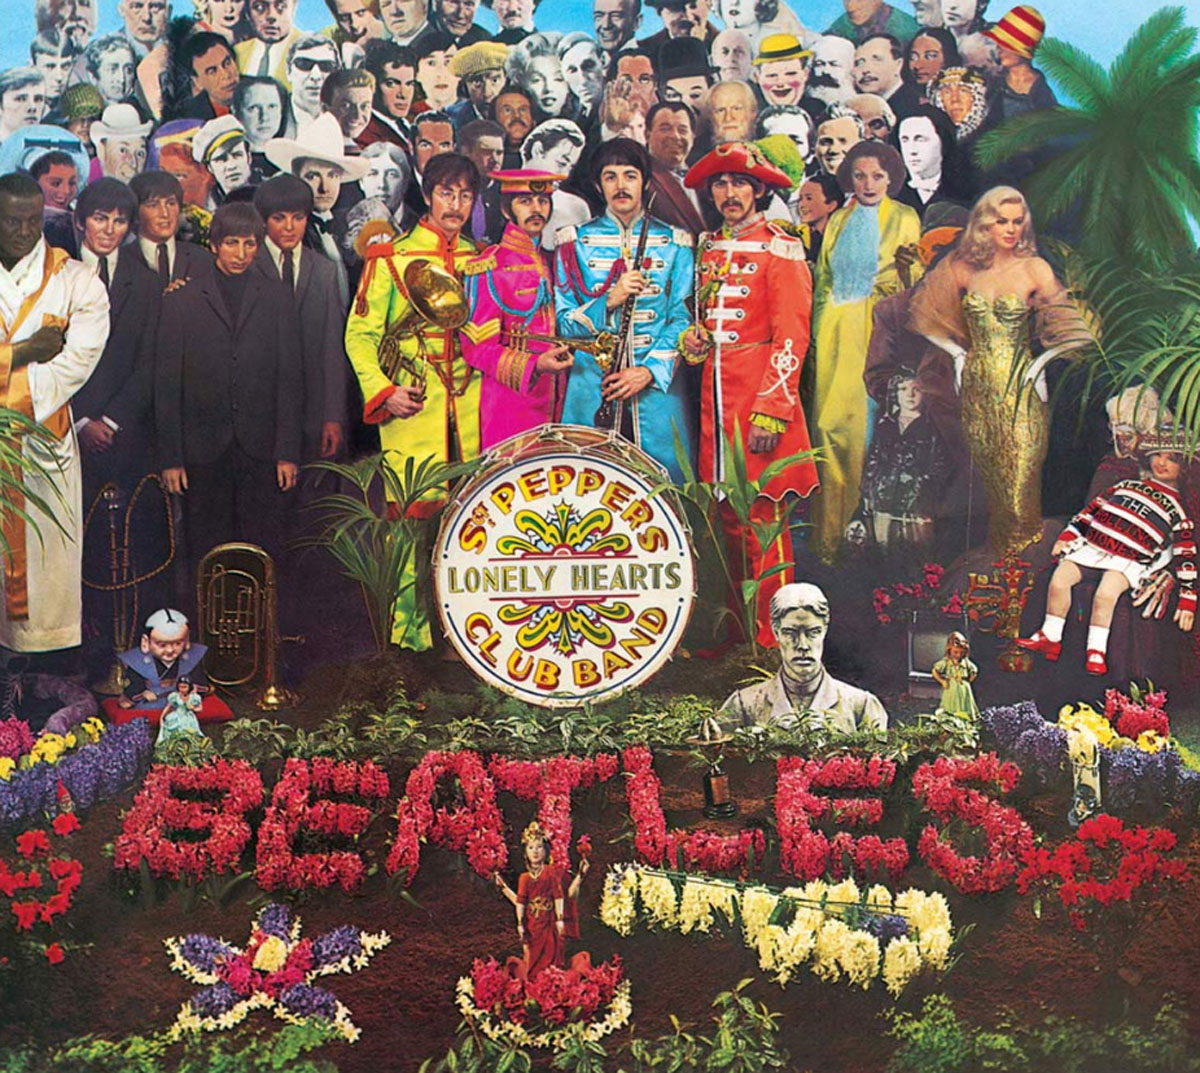 Sgt. Pepper, 50 Years Later